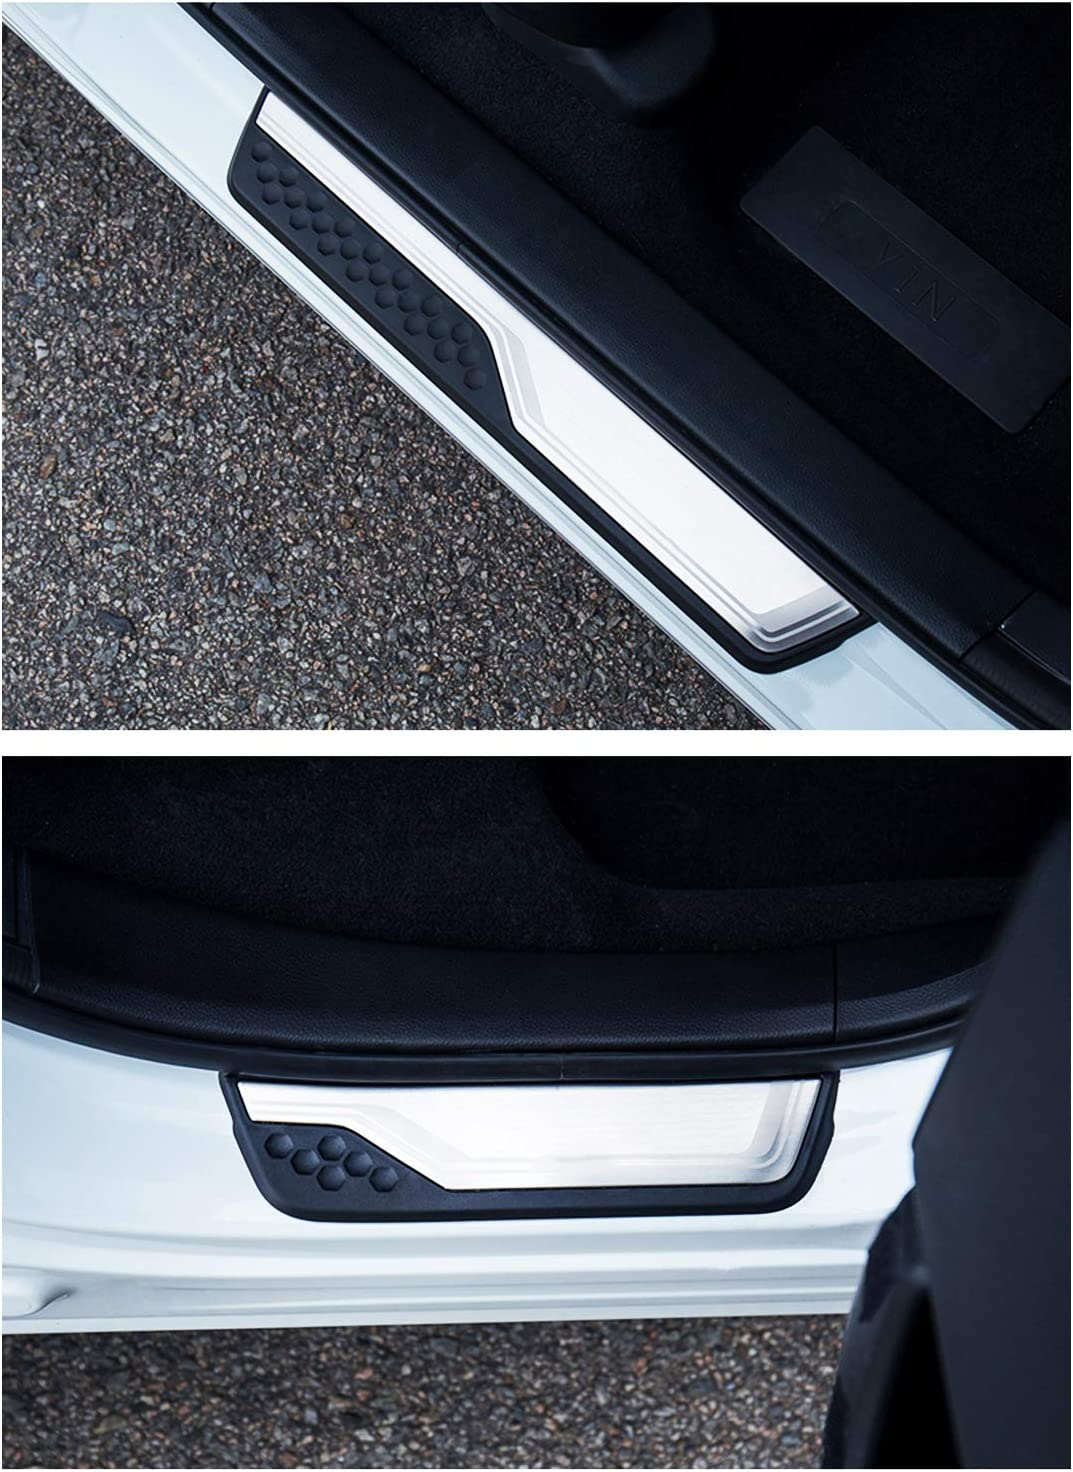 Outer LED Blue Light Door Sill Scuff Plate Guards Fit For Honda CR-V 2019 2020